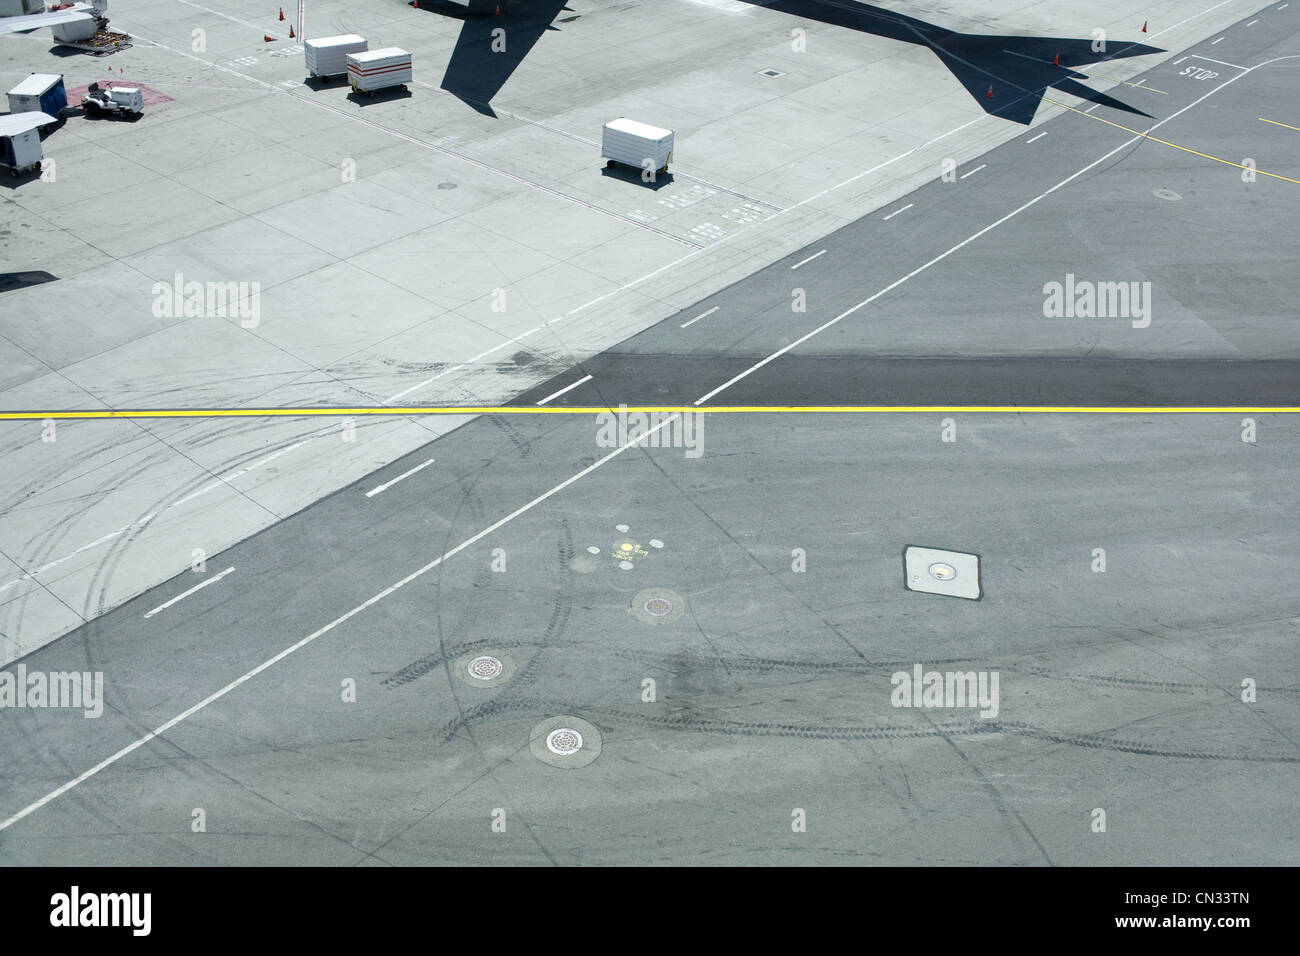 Airport runway with shadow of plane - Stock Image